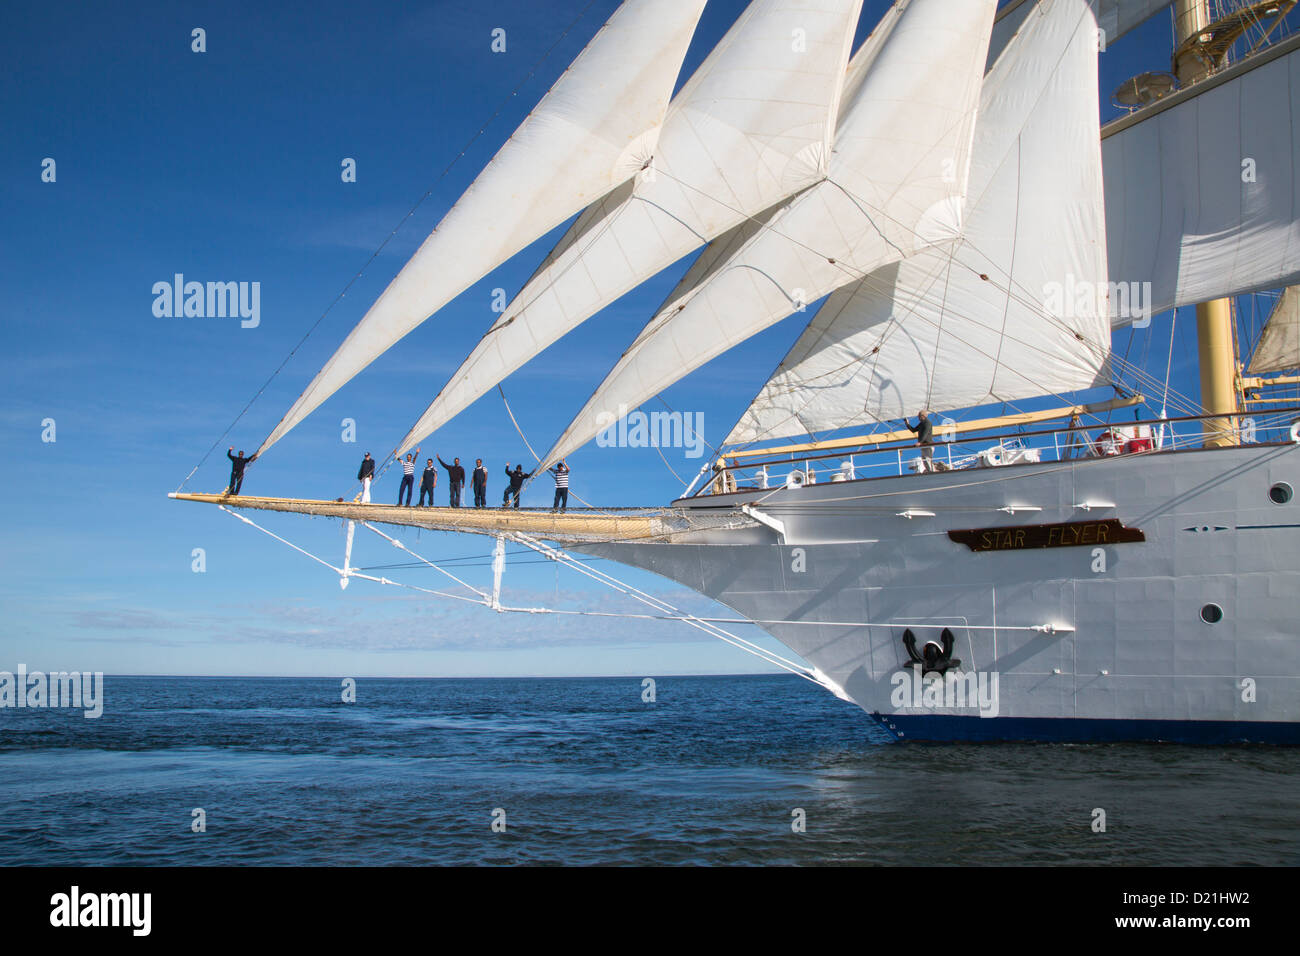 Captain Juergen Mueller-Cyran and sailors on bowsprit of sailing cruise ship Star Flyer under full sail, Baltic - Stock Image